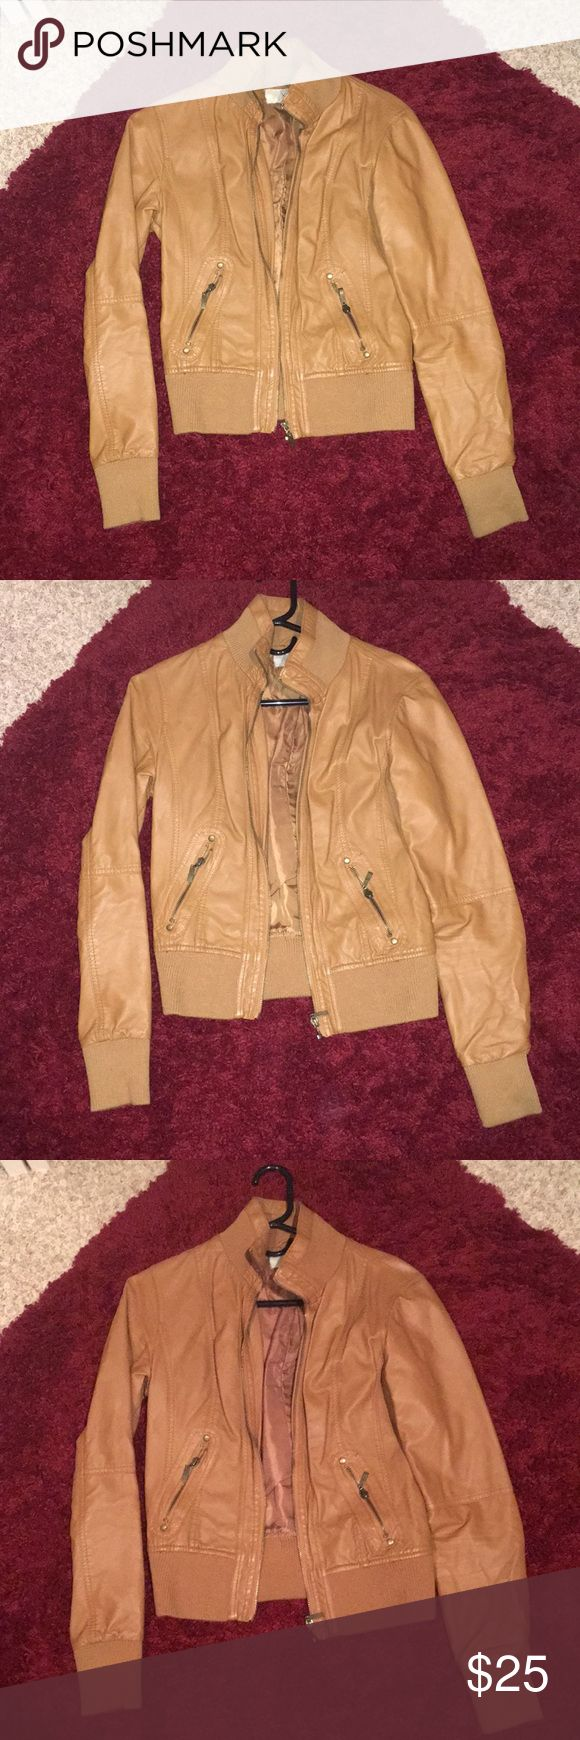 Forever 21 Camel Leather Jacket Camel colored leather jacket from Forever 21. Perfect for the fall! Gently used, great condition! Forever 21 Jackets & Coats